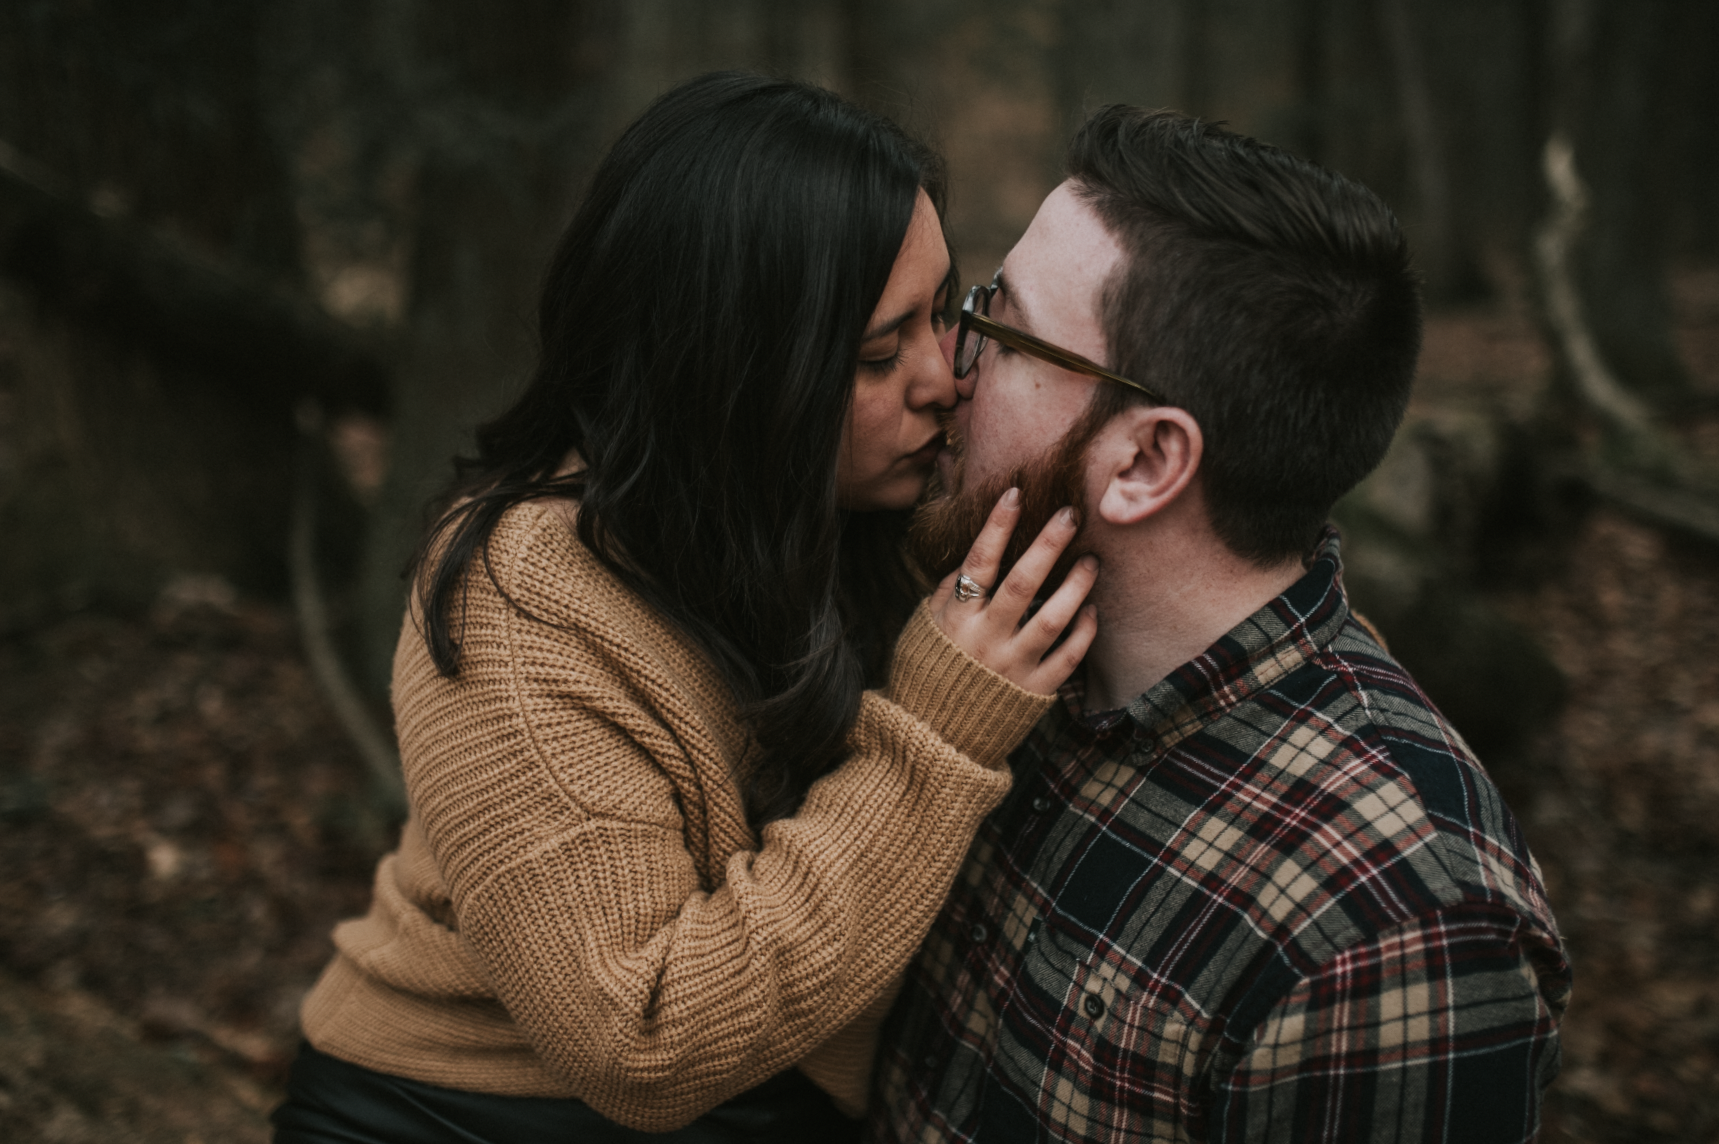 matt-natalia-winter-woods-engagement-session-pennsylvania-wedding-photographer-14